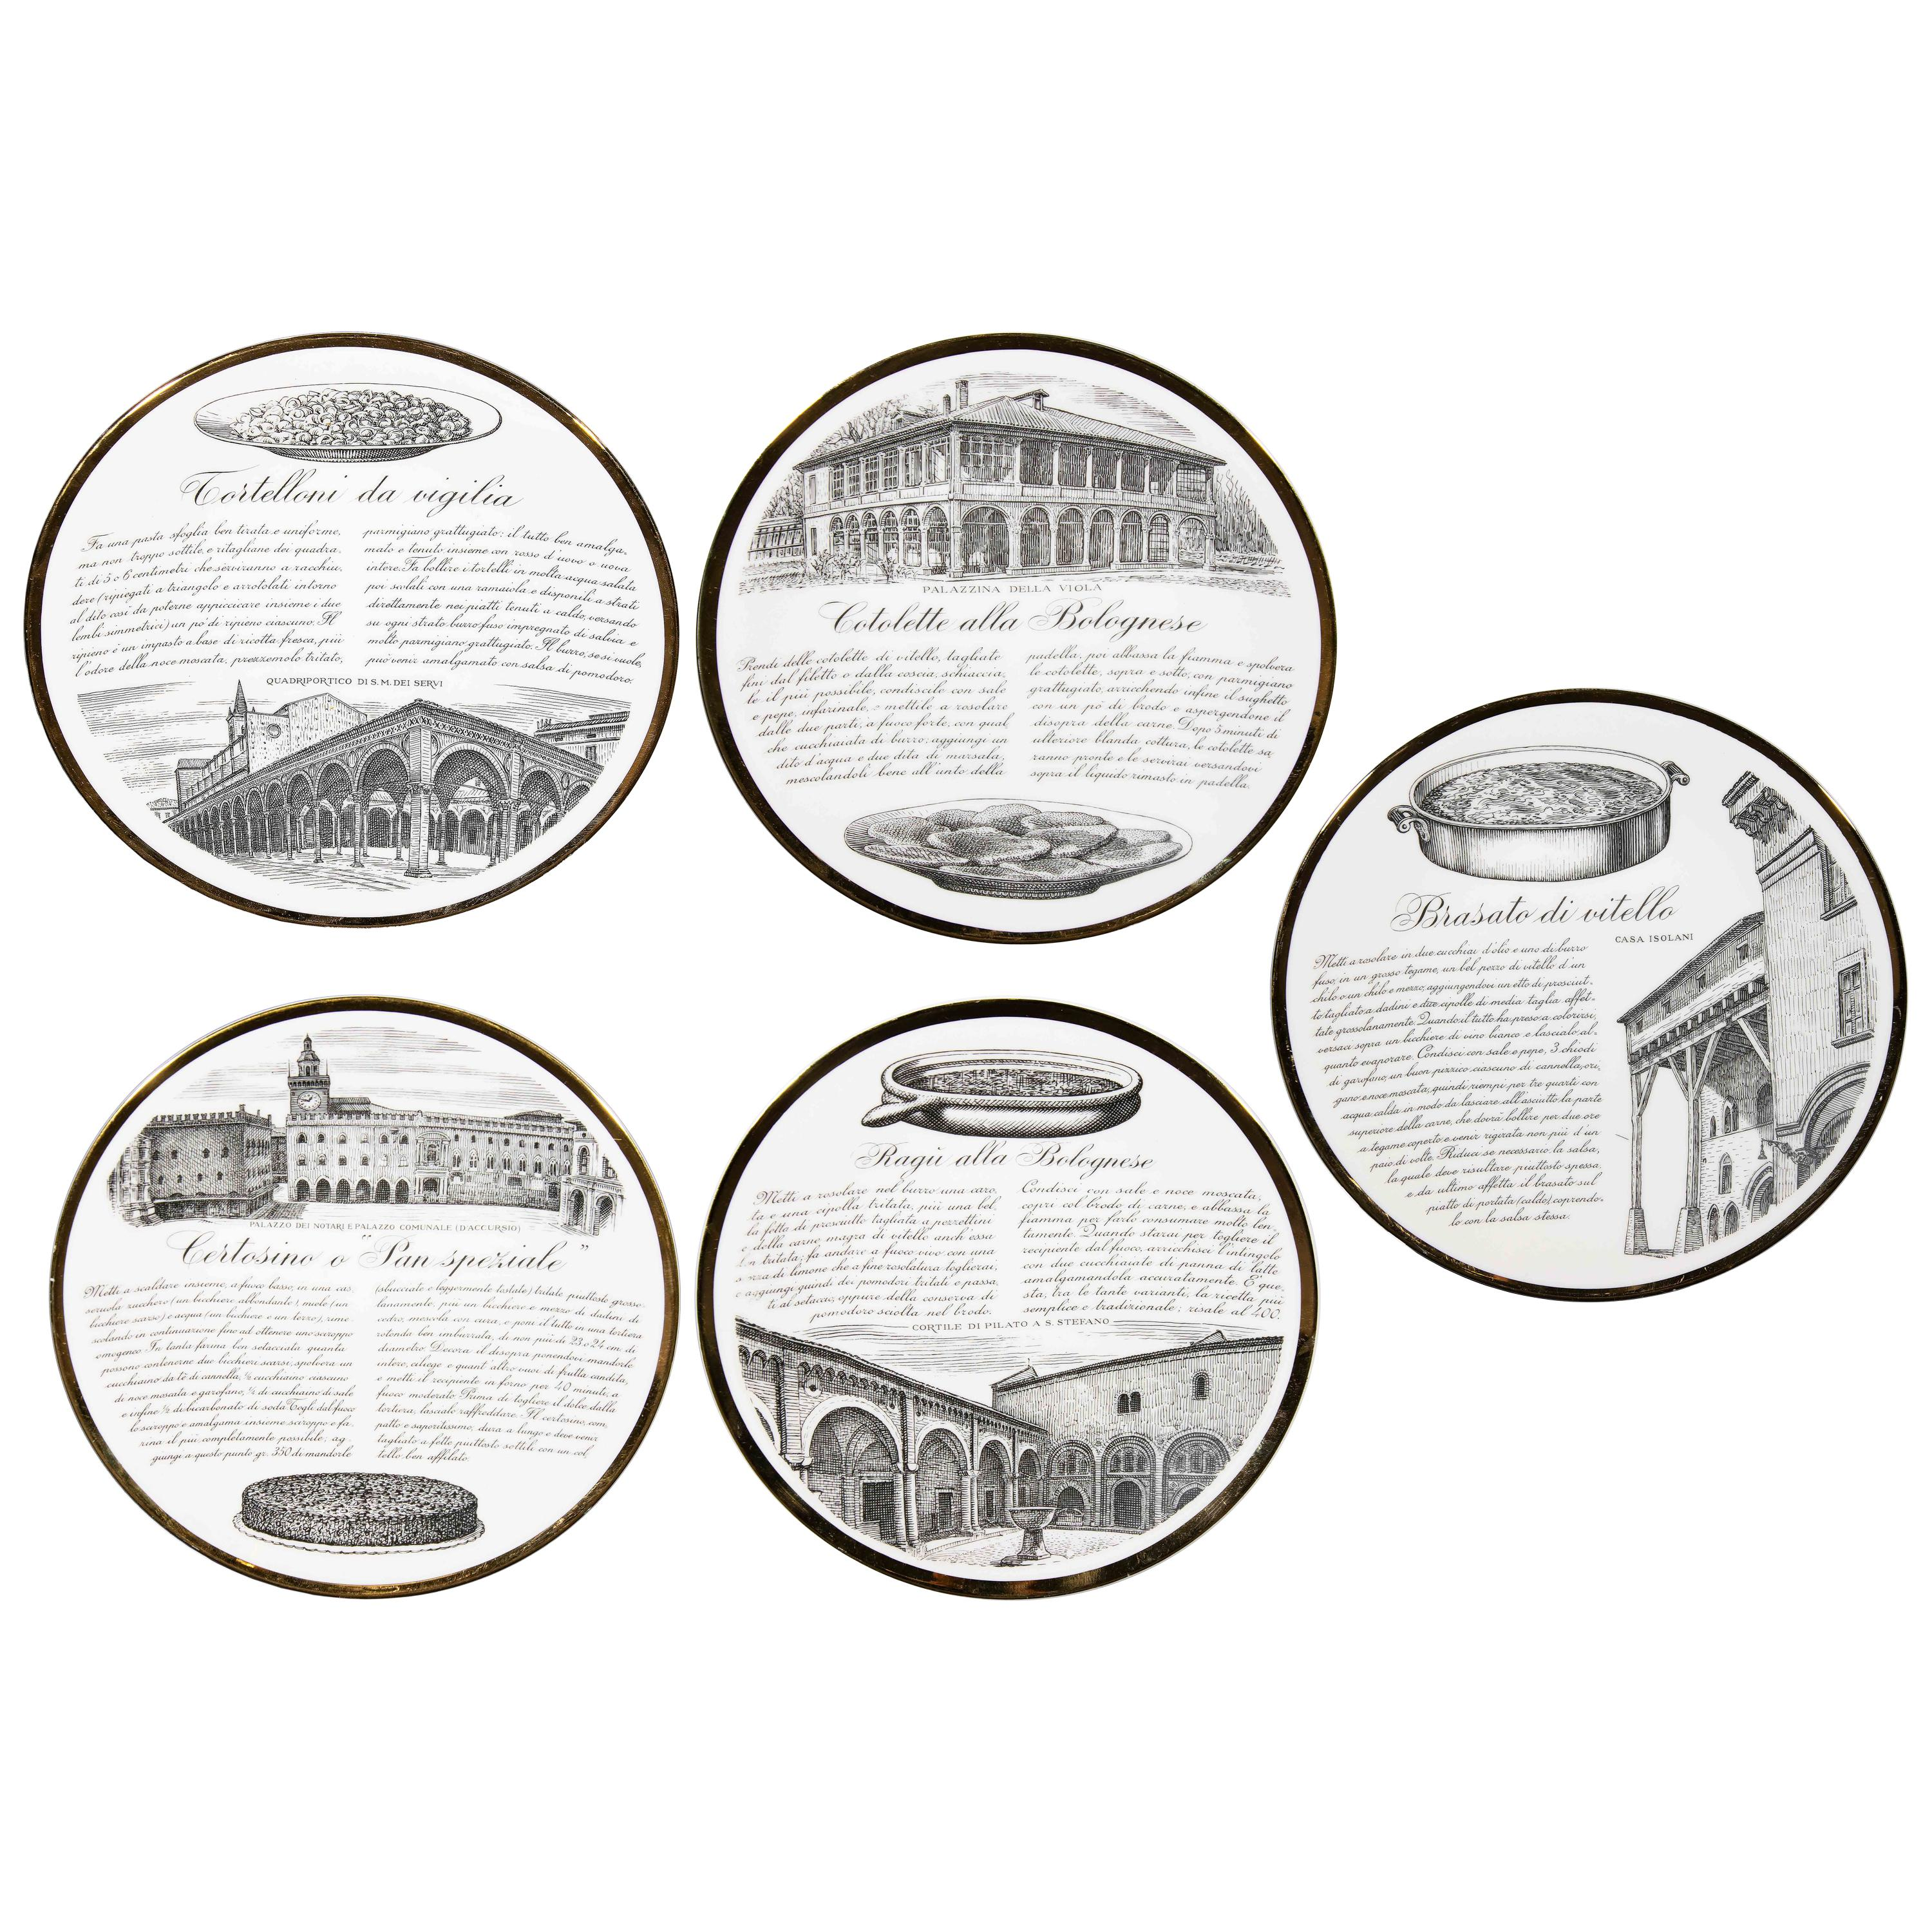 Recipes, Set of 5 Vintage Plates by Piero Fornasetti, 1960s